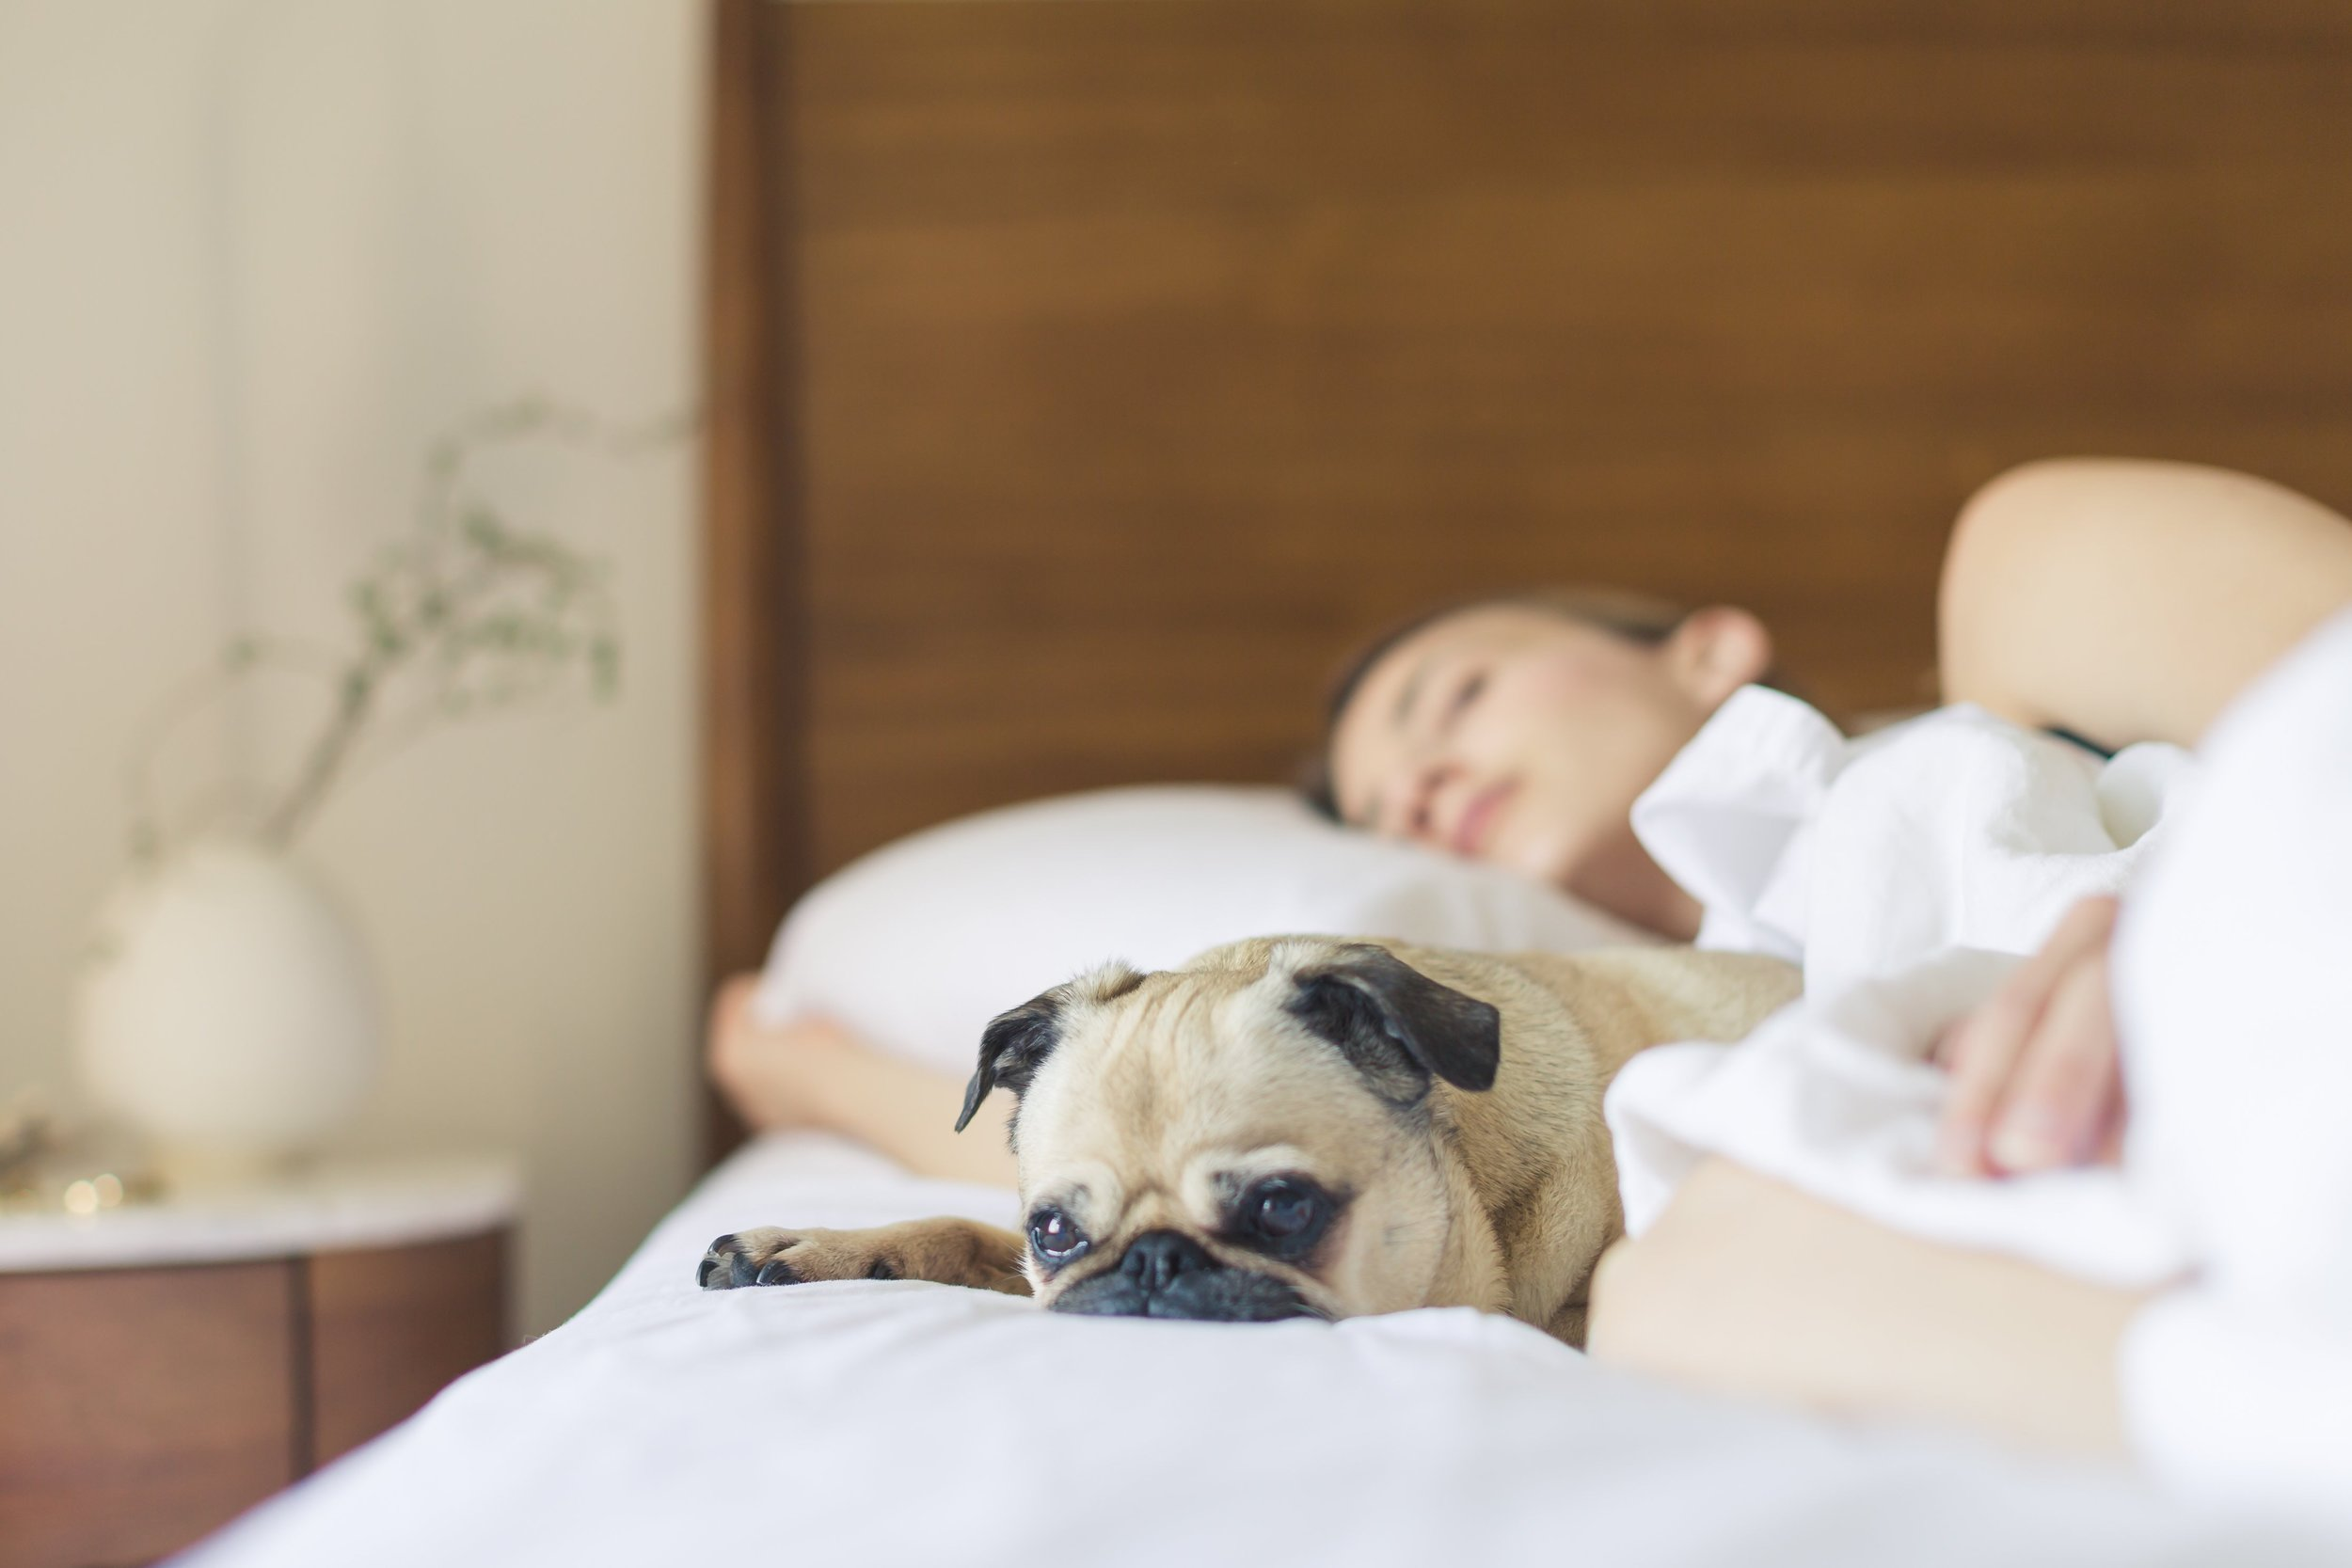 Dog Sleeping on bed with woman